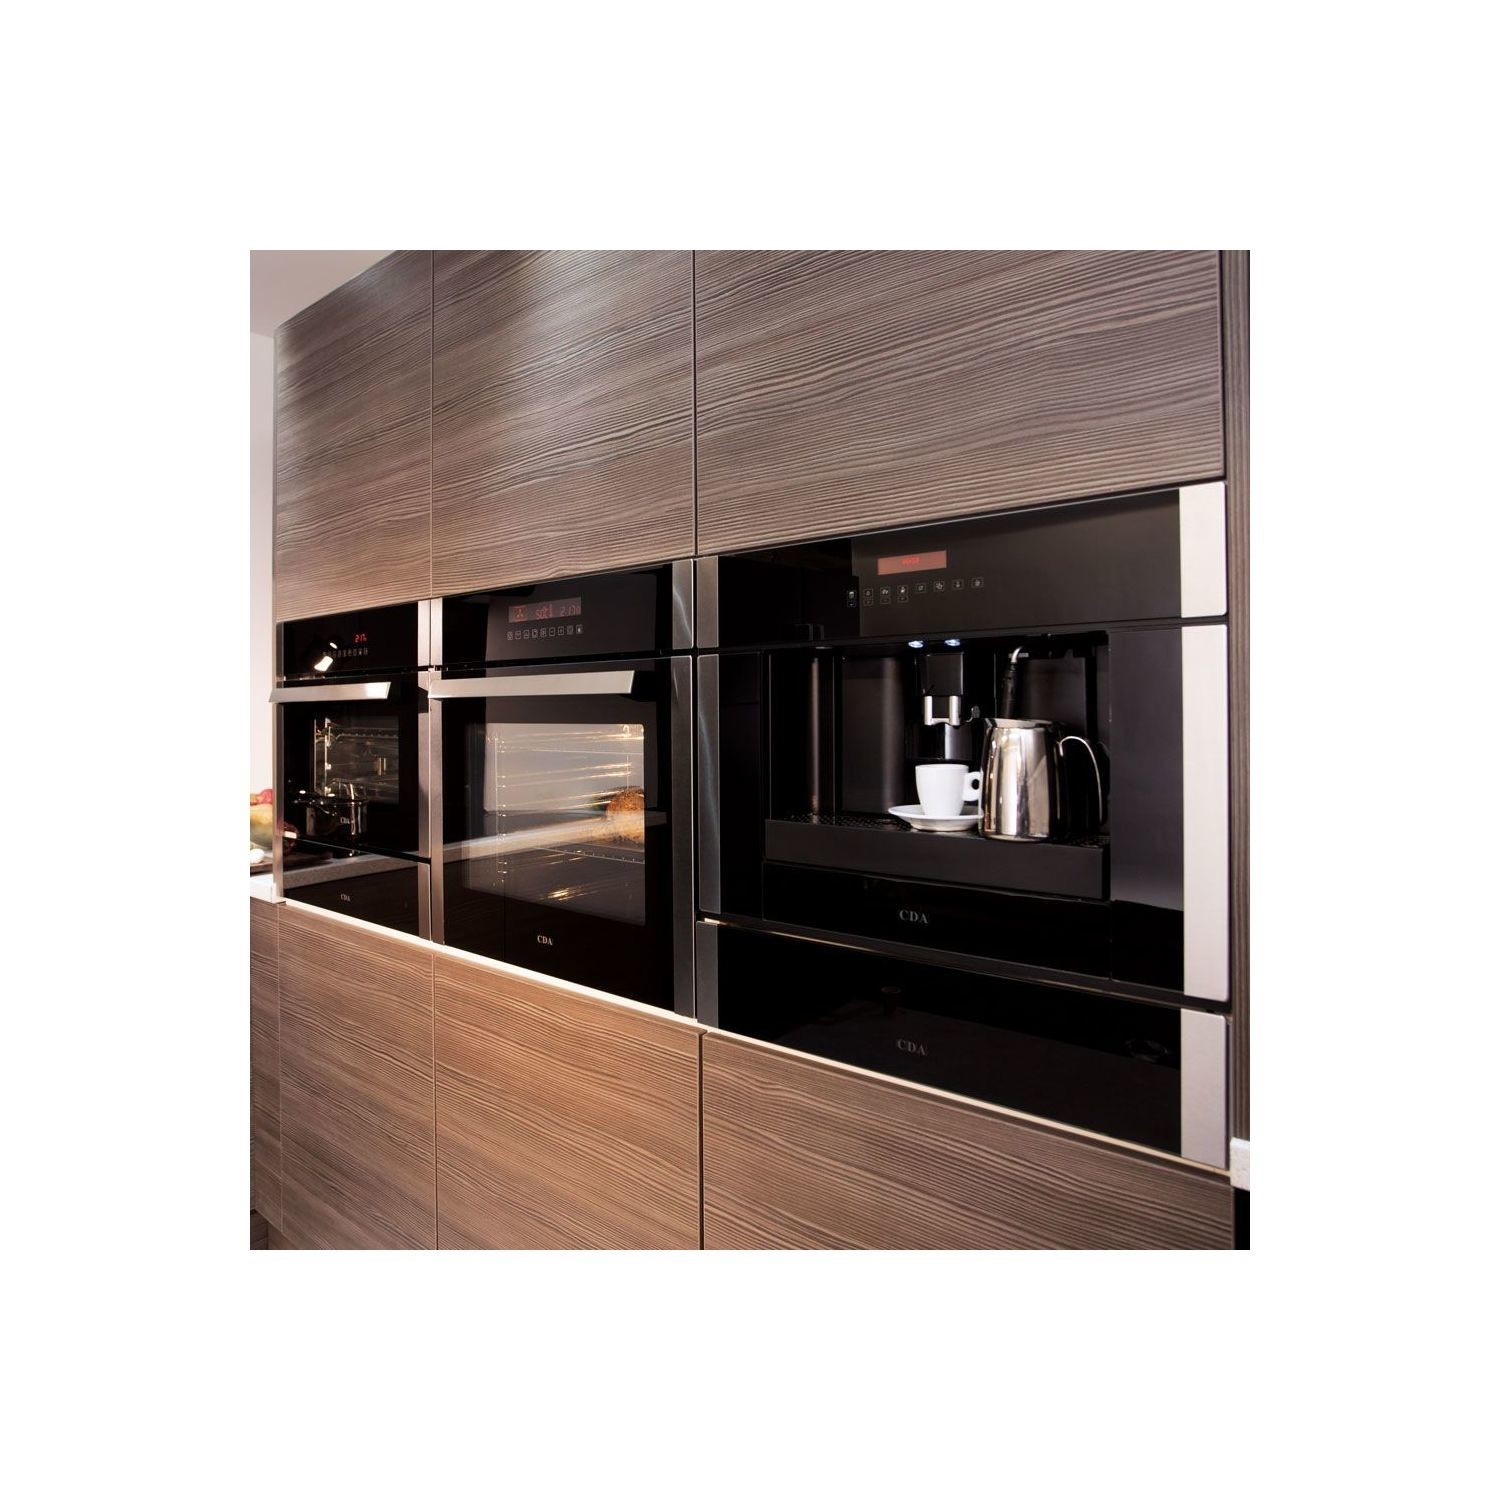 Cda Vc801ss Fully Automatic Built In Bean To Cup Coffee Machine Stainless Steel